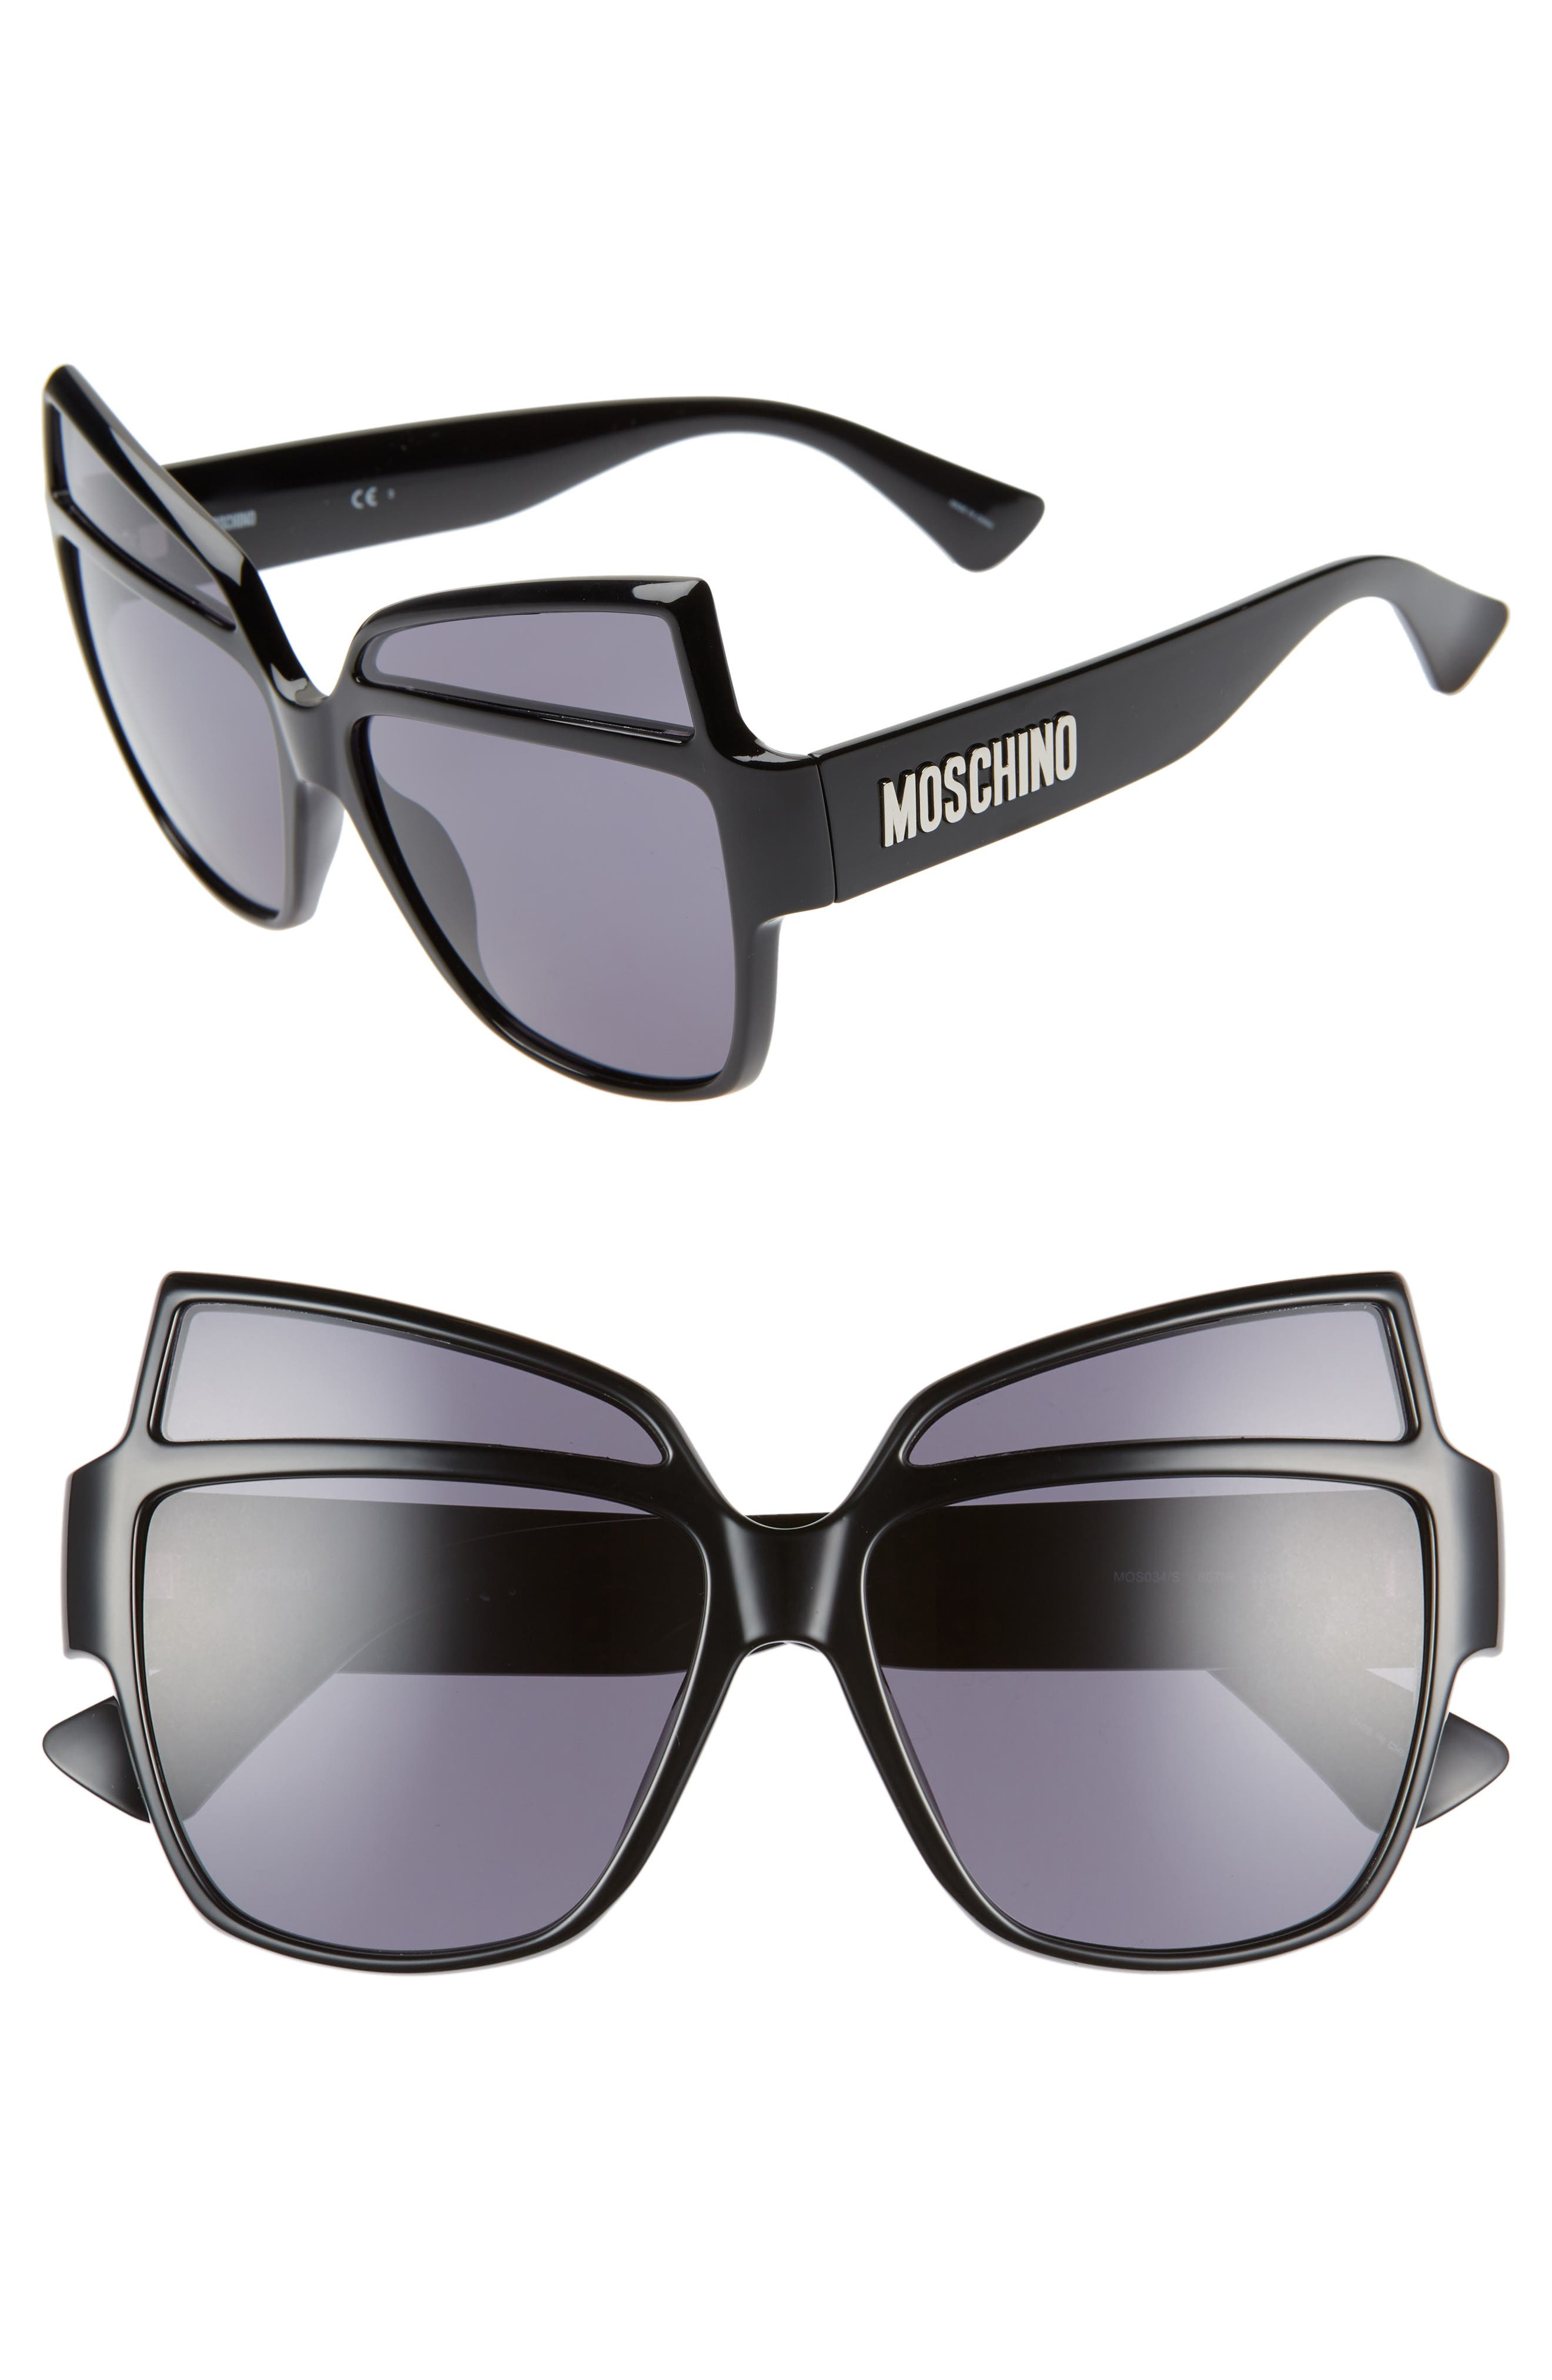 MOSCHINO, 58mm Butterfly Sunglasses, Main thumbnail 1, color, BLACK